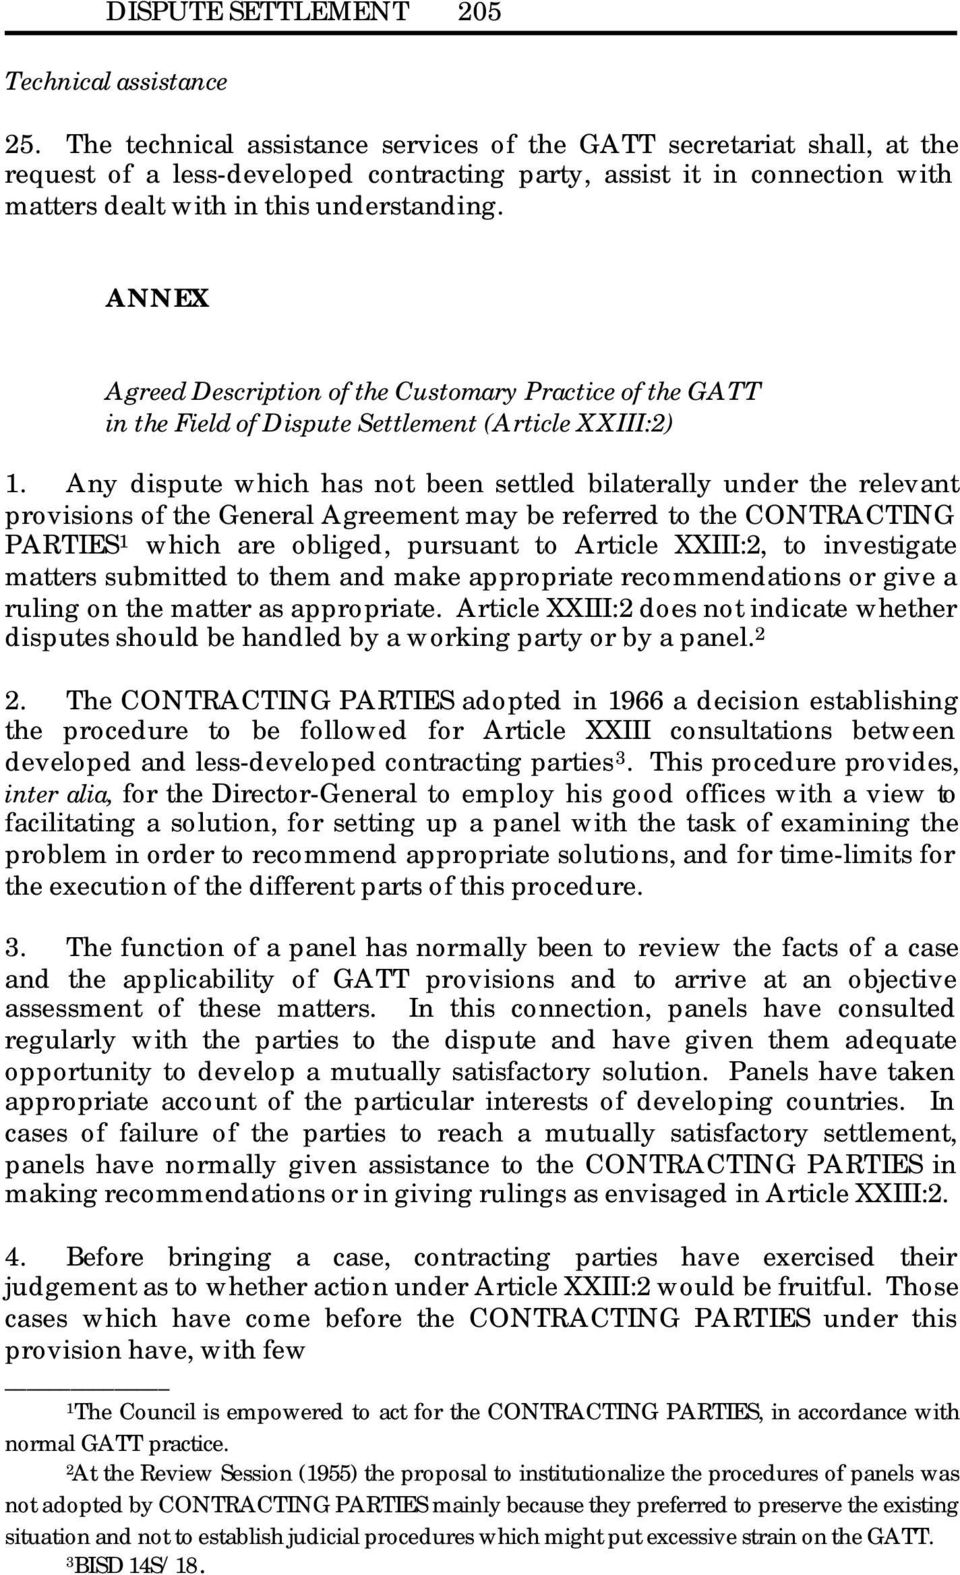 ANNEX Agreed Description of the Customary Practice of the GATT in the Field of Dispute Settlement (Article XXIII:2).